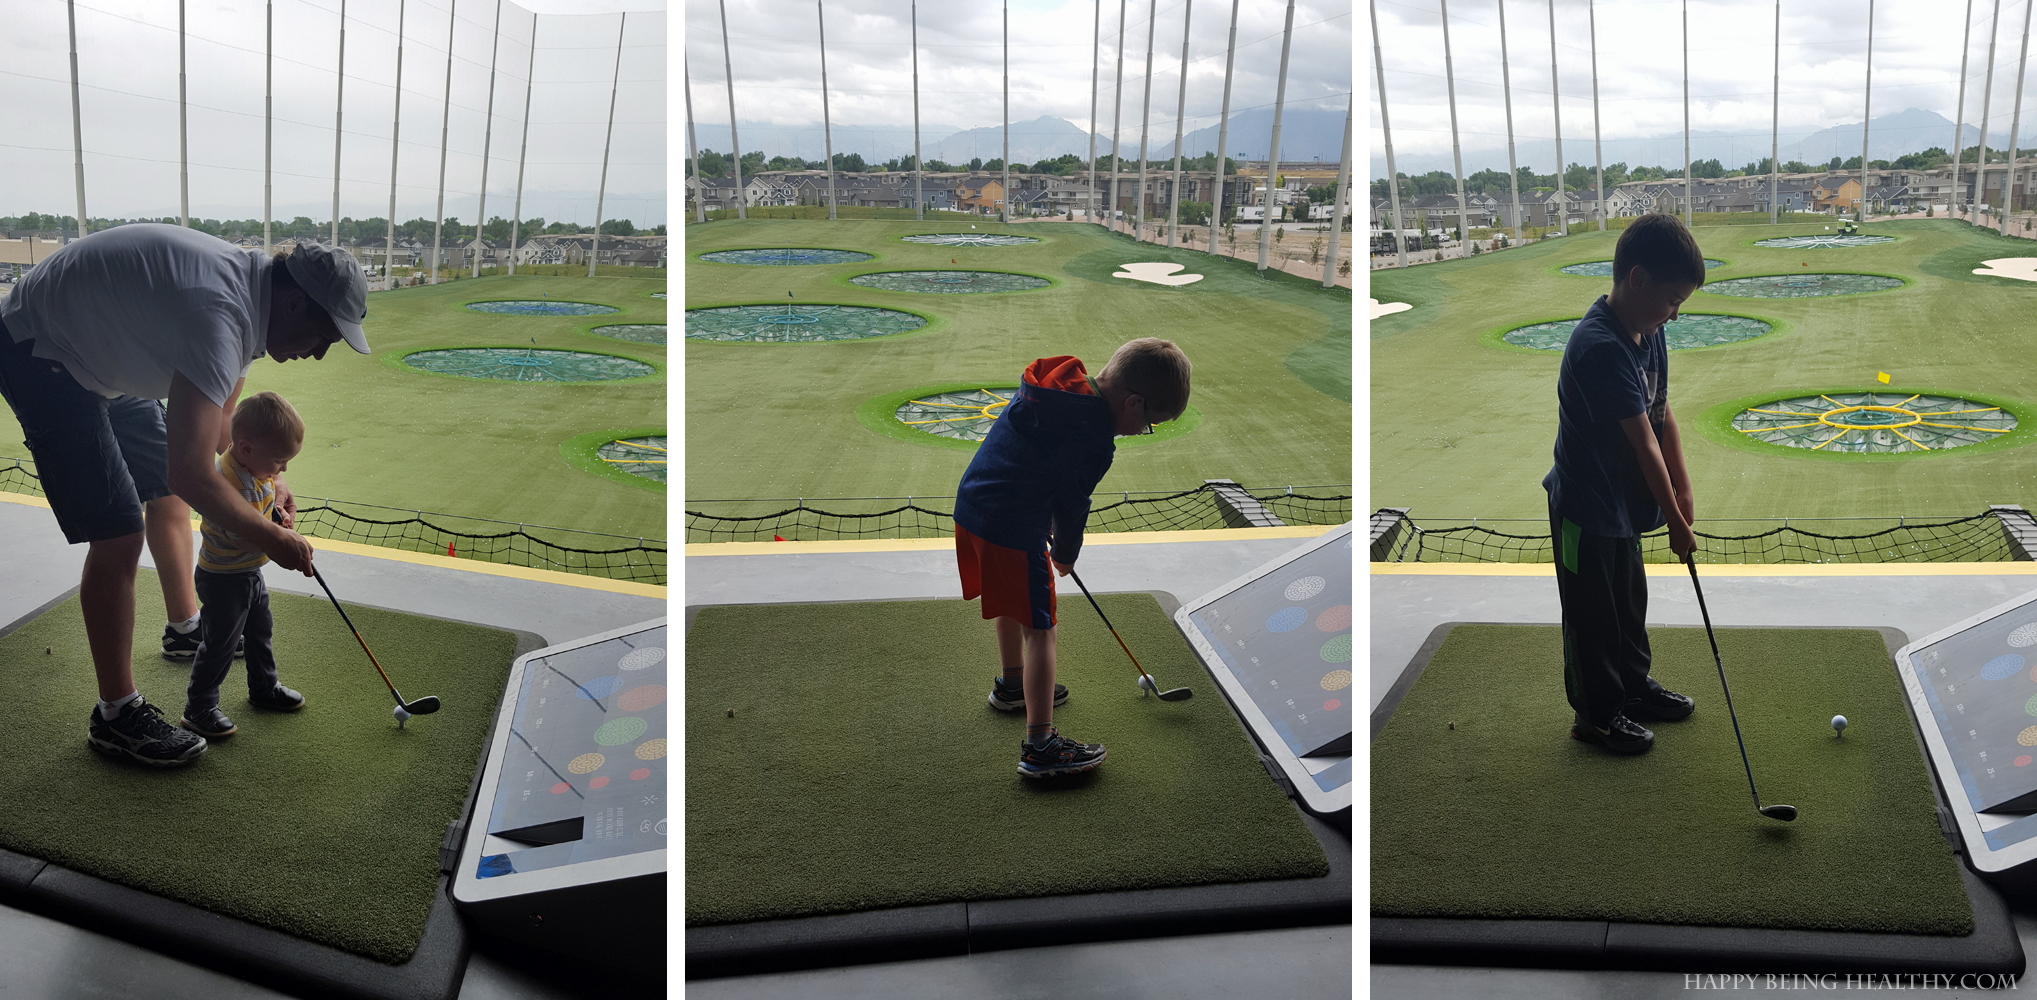 The kids golfing at Top Golf - Copy